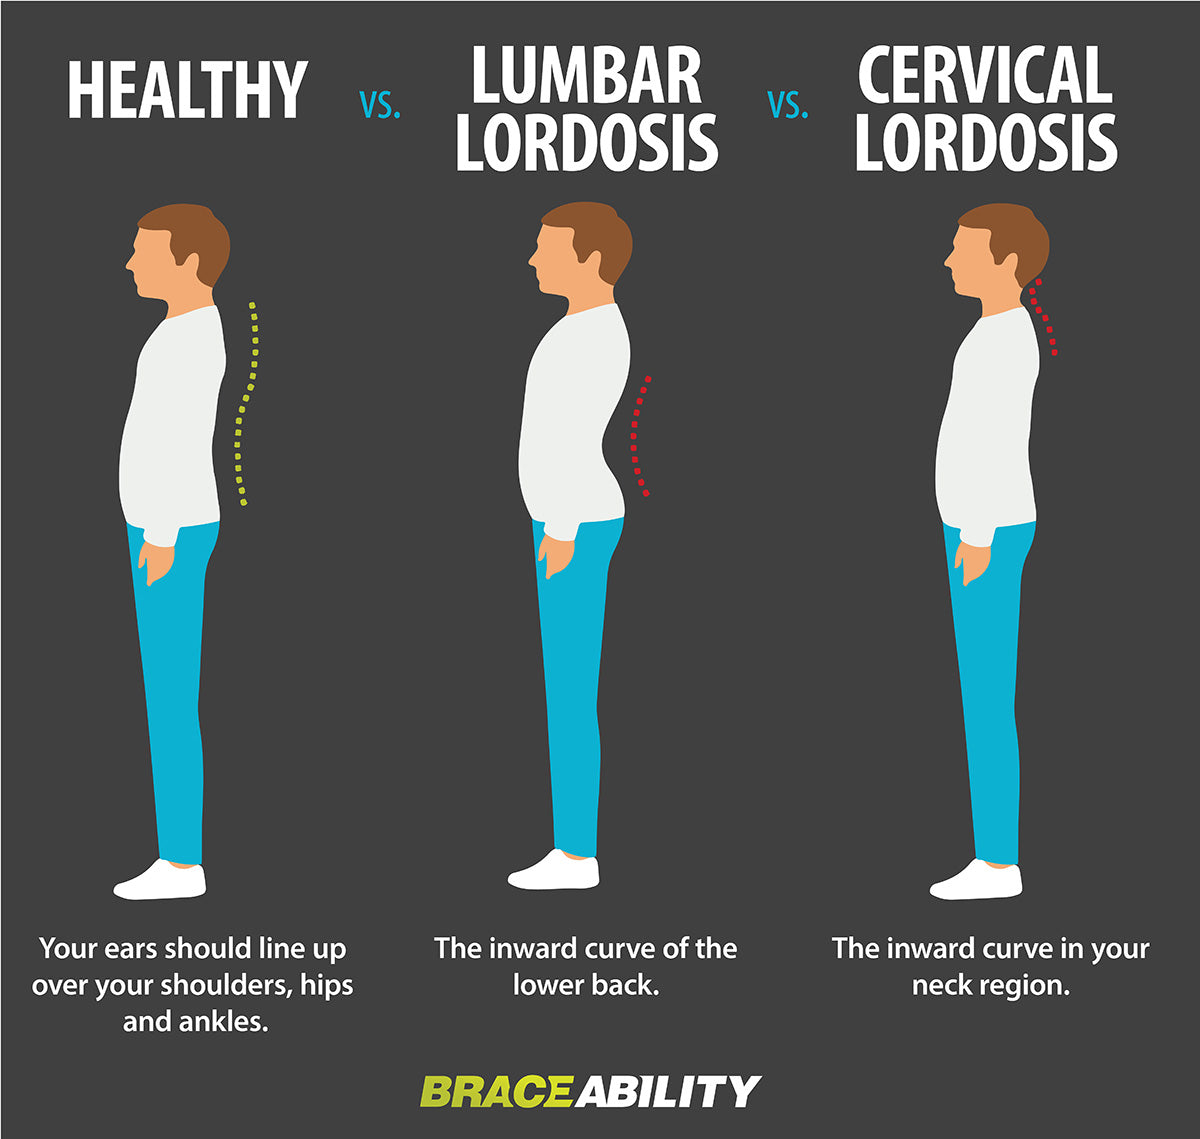 infographic describing the two different types of lordosis in your lumbar and cervical vertebrae